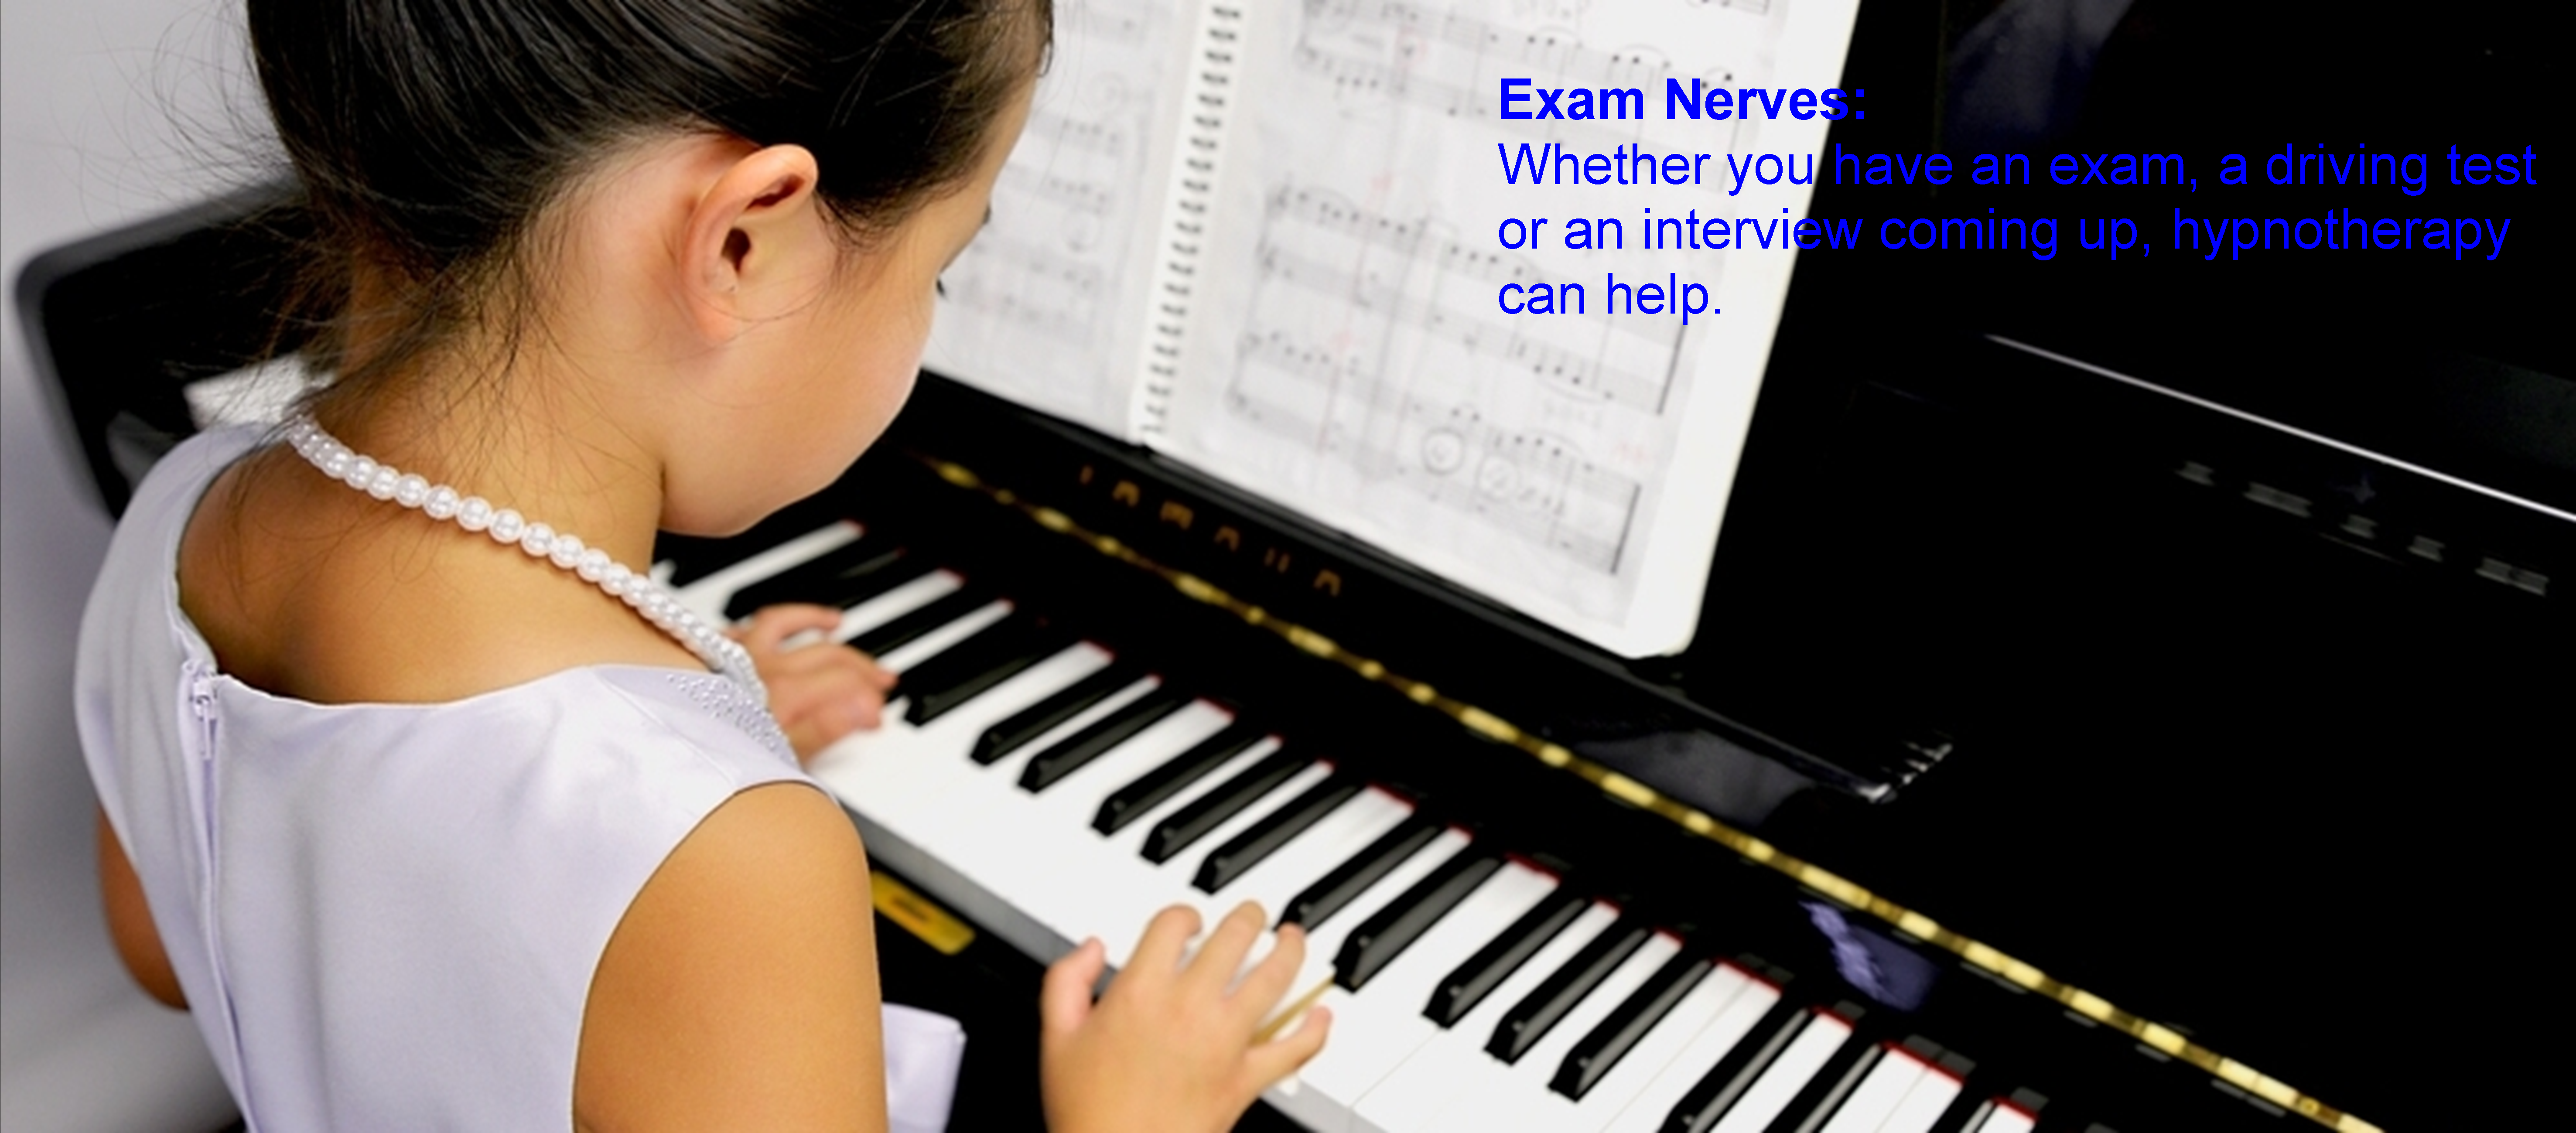 Whether you have a test, exam or interview, you can control your nerves